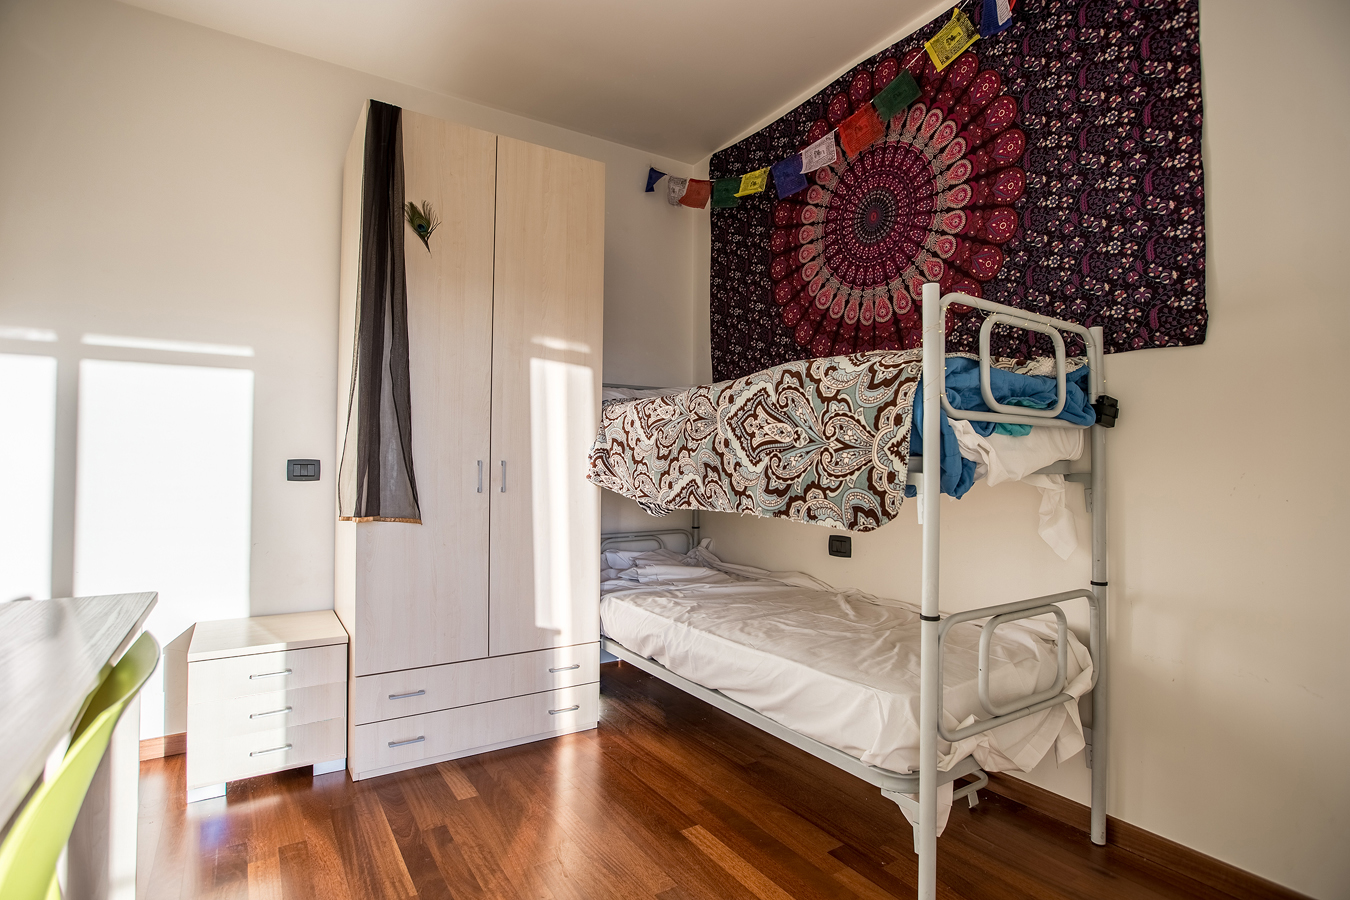 Student Accomodation for rent in single room in Via Adamello, 8, in Milano, Italy